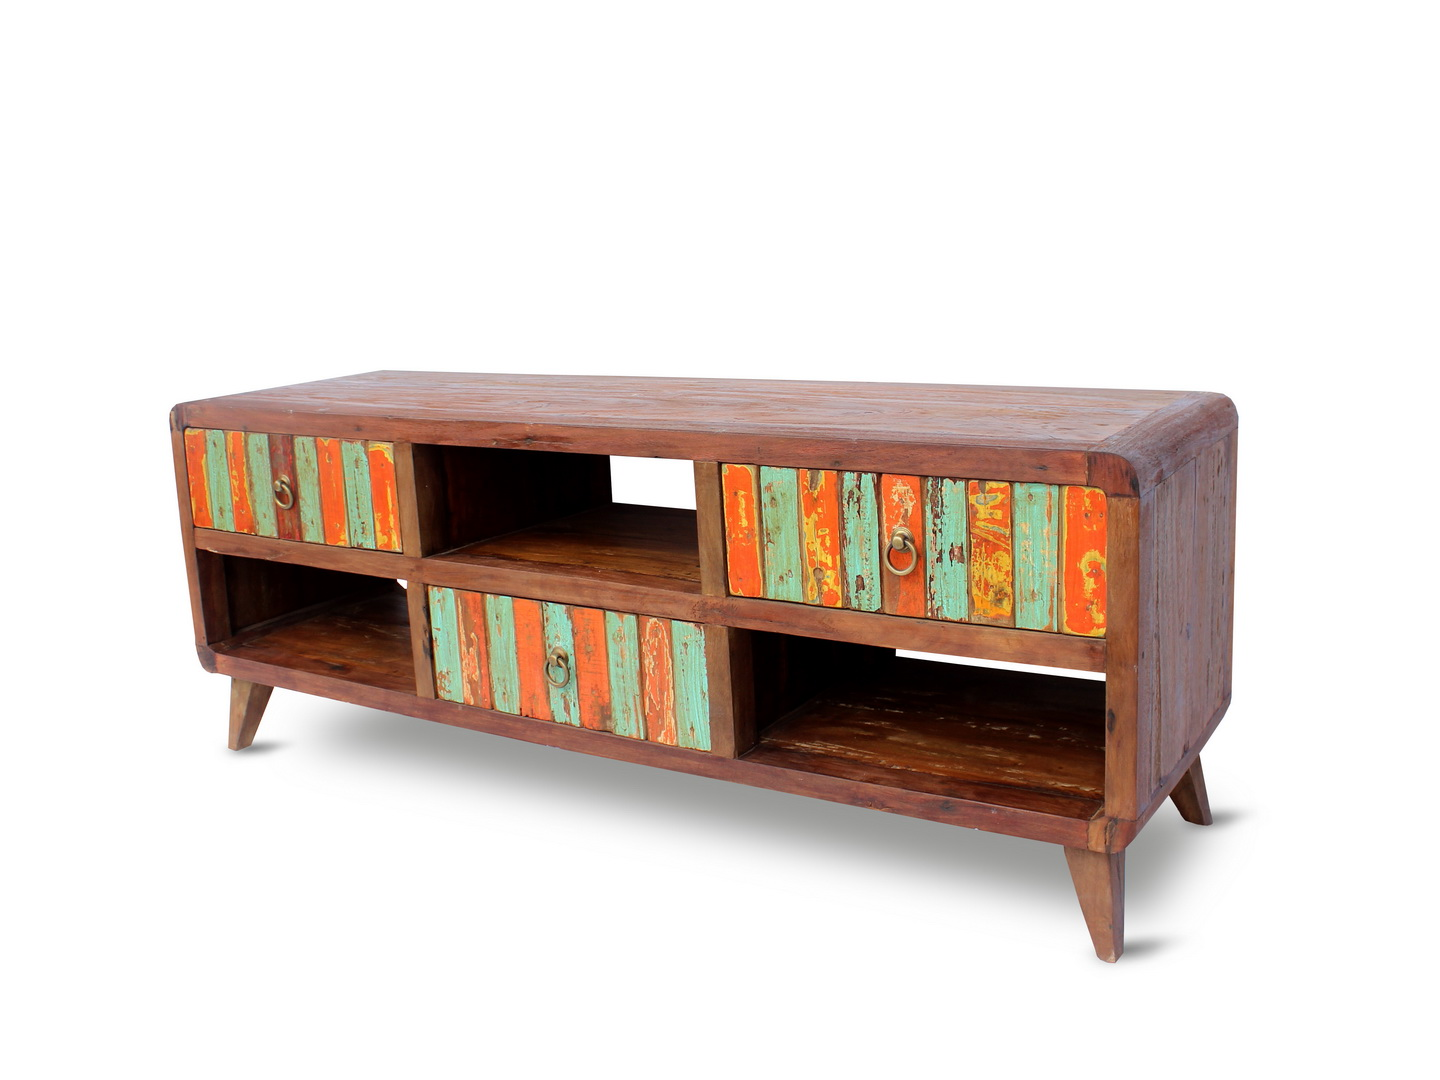 NewHaven_cabinet_01_yuni_bali_furniture_manufactuerer_exporter_jepara_teakwood_indonesia_shopping_showroom